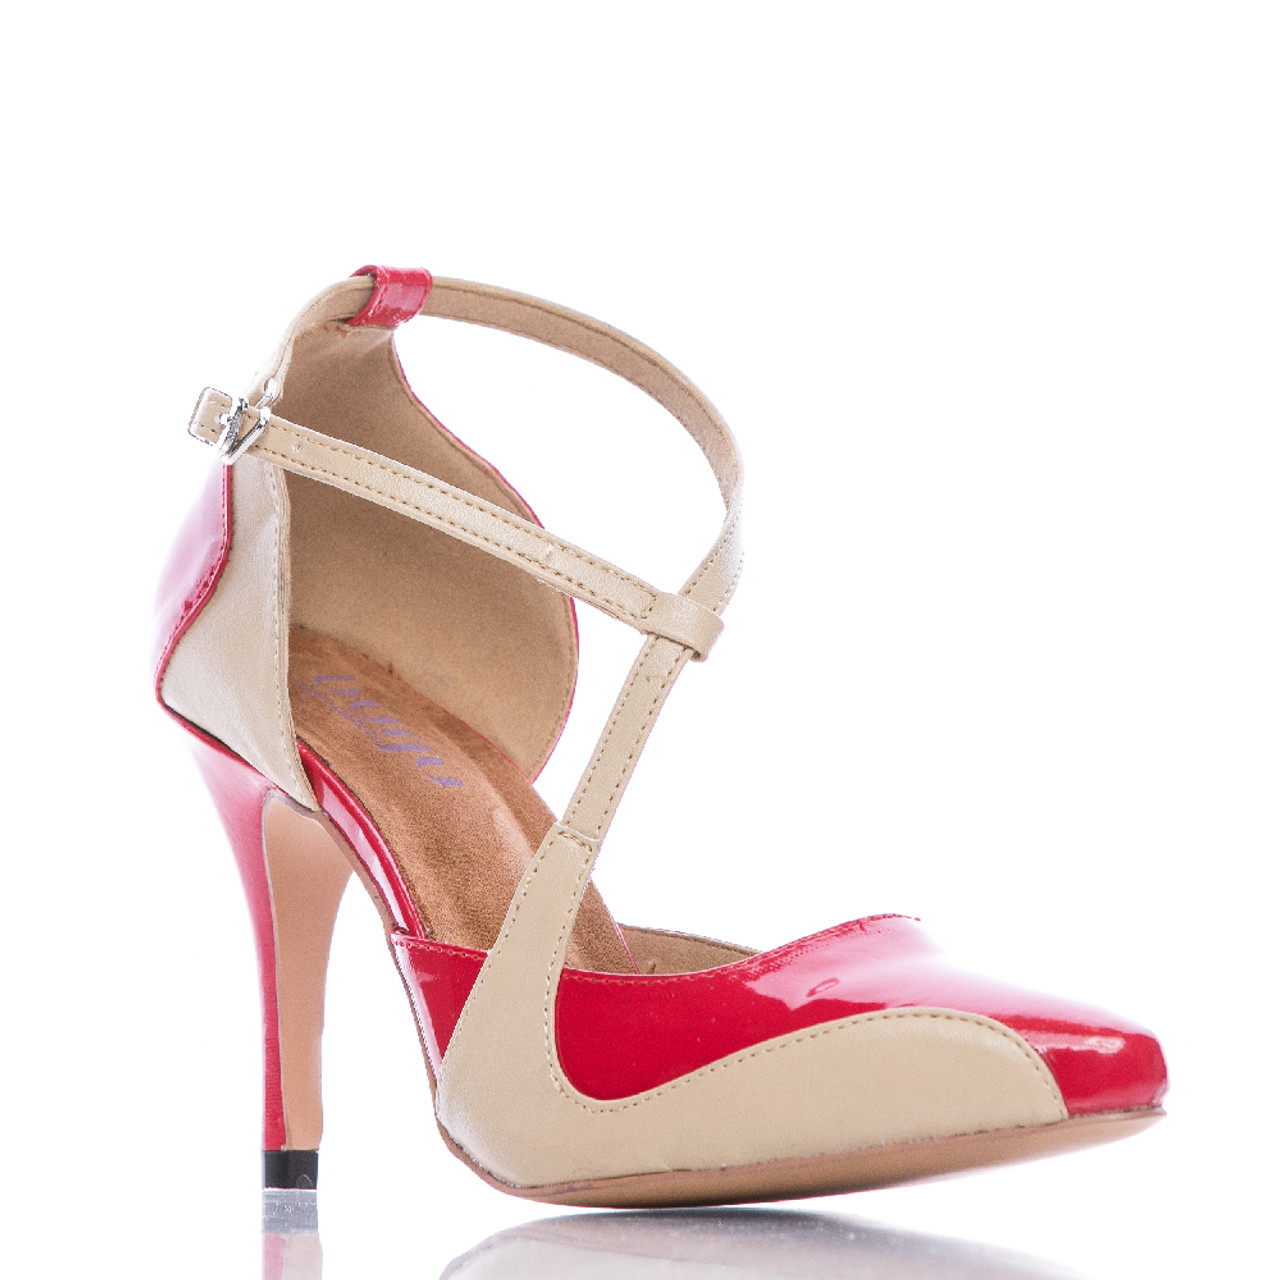 62ef457b46e Silana - Red and Tan Pointed Toe Ankle Strap Stiletto Pump - 3.5 inch Heels  - Burju Shoes